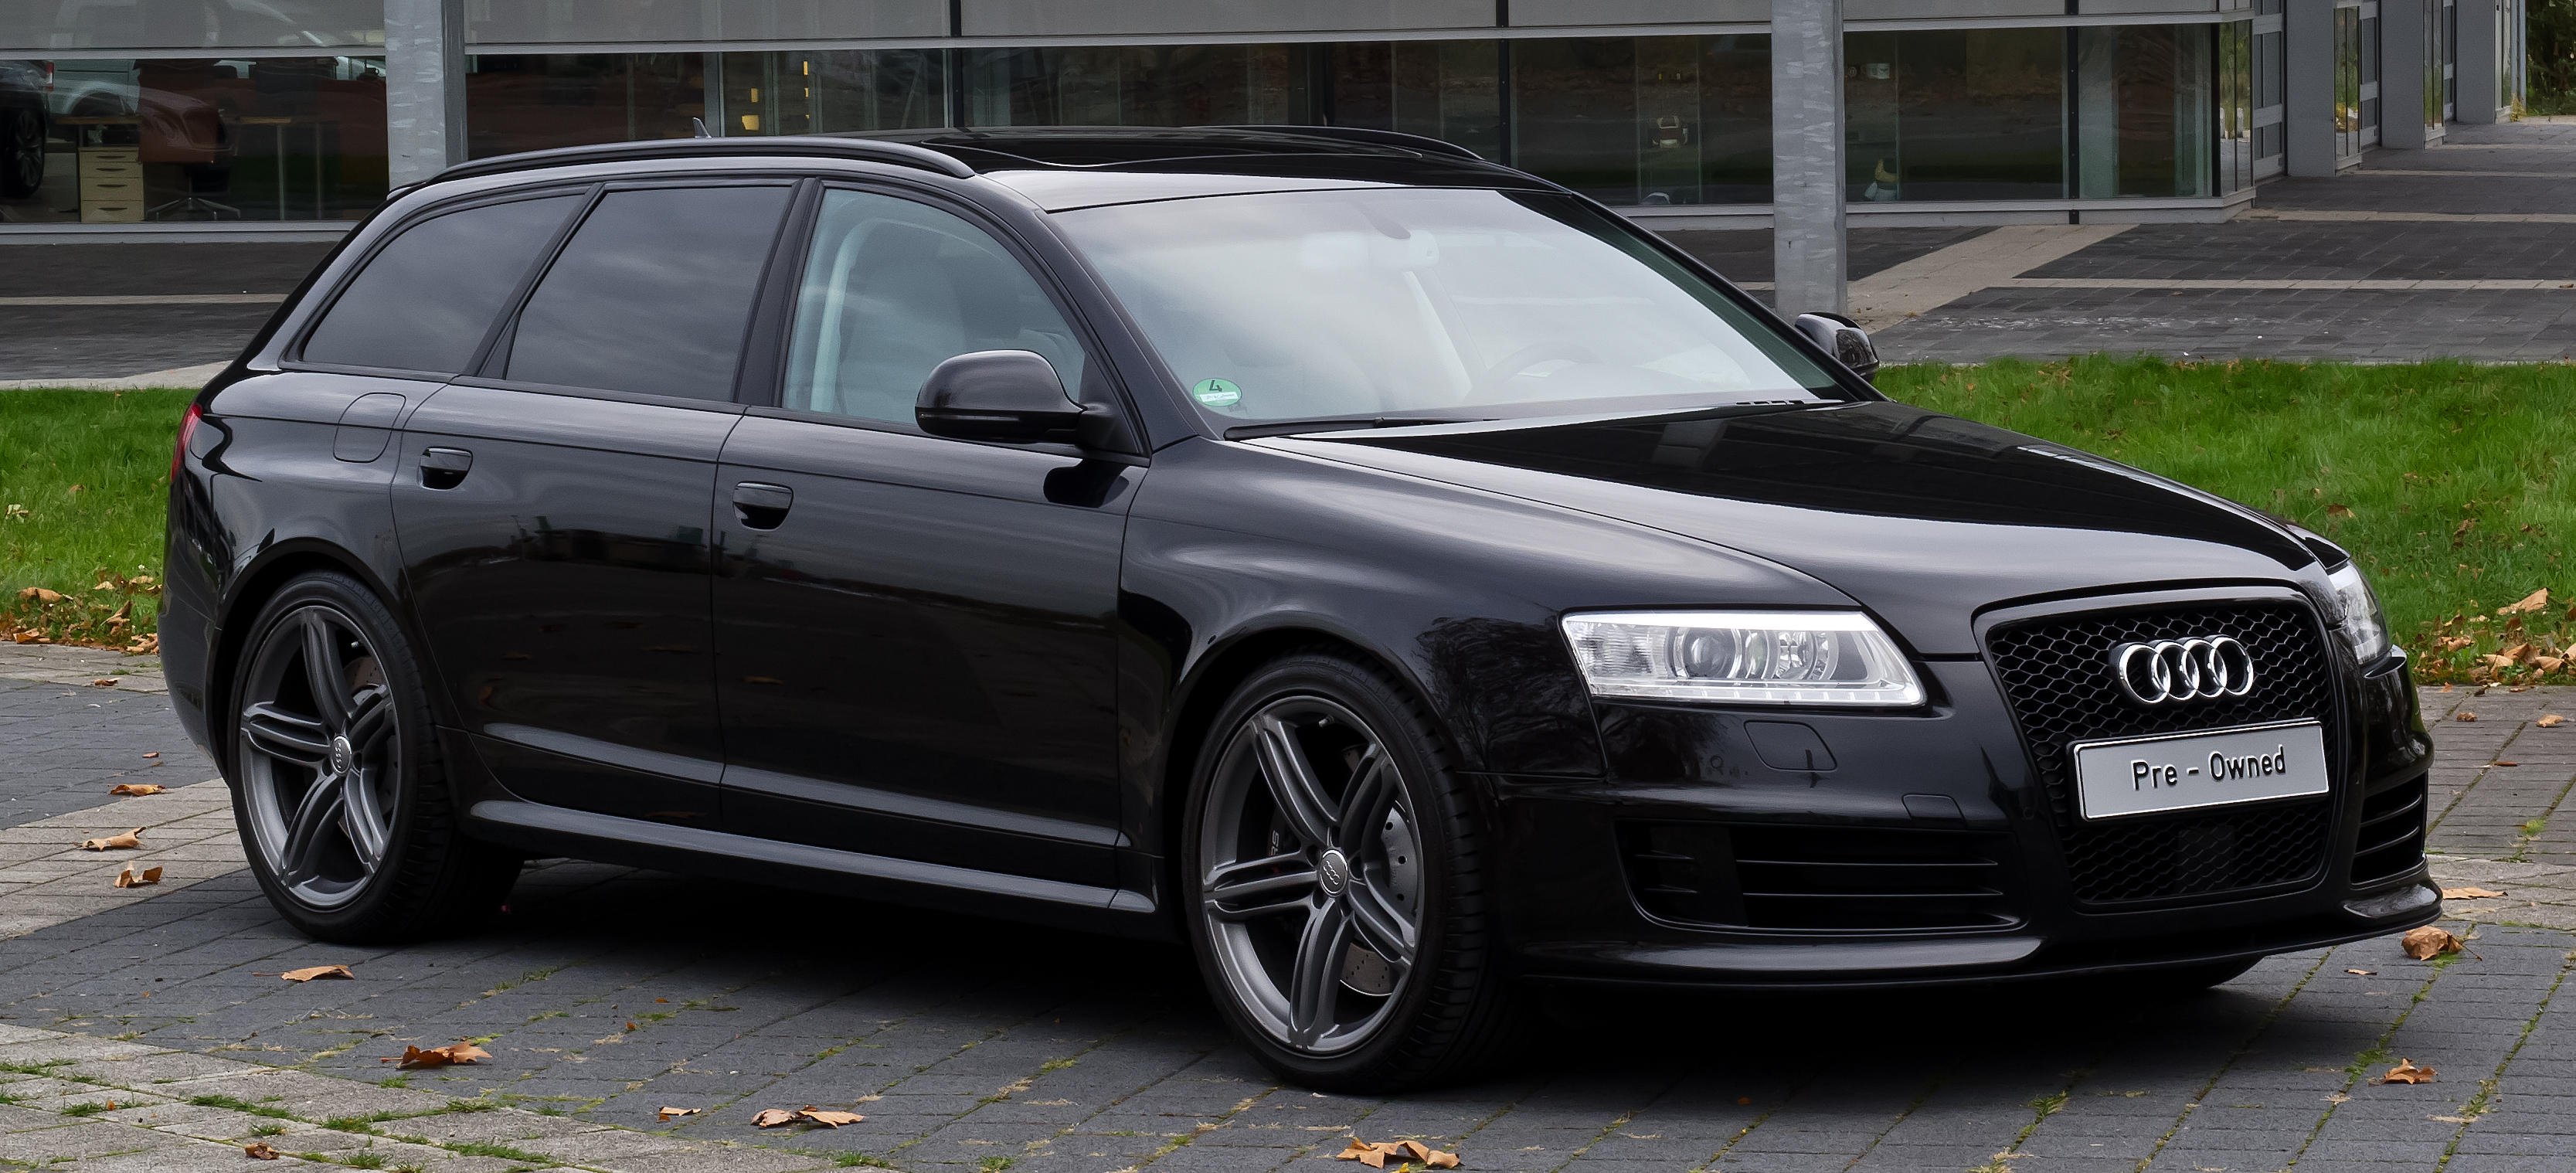 file audi rs 6 avant c6 frontansicht 1 26 oktober 2012 d wikimedia commons. Black Bedroom Furniture Sets. Home Design Ideas